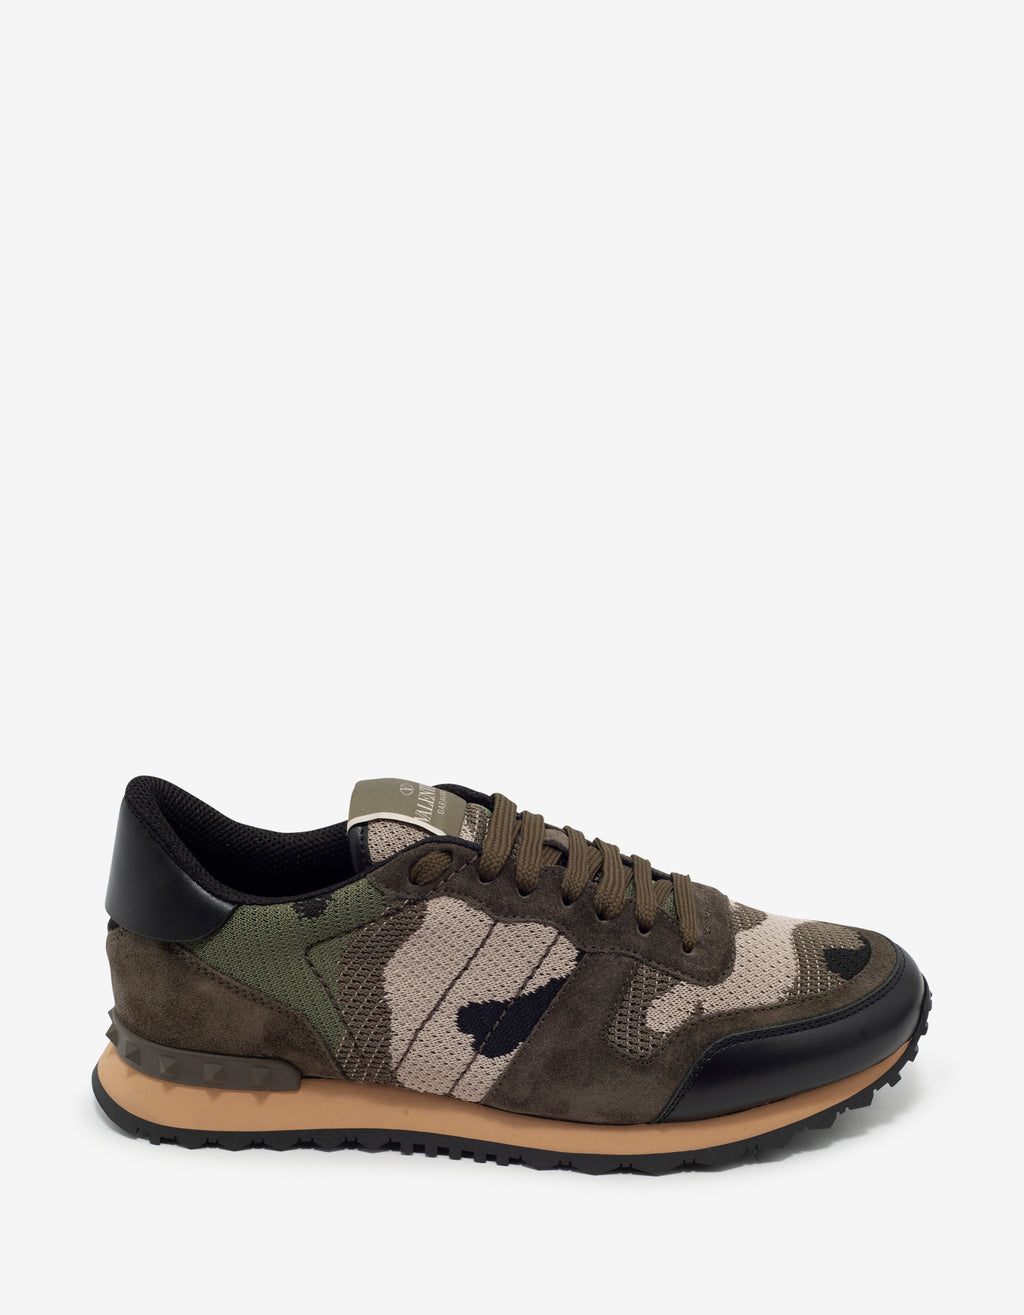 Green Mesh Camouflage Rockrunner Trainers